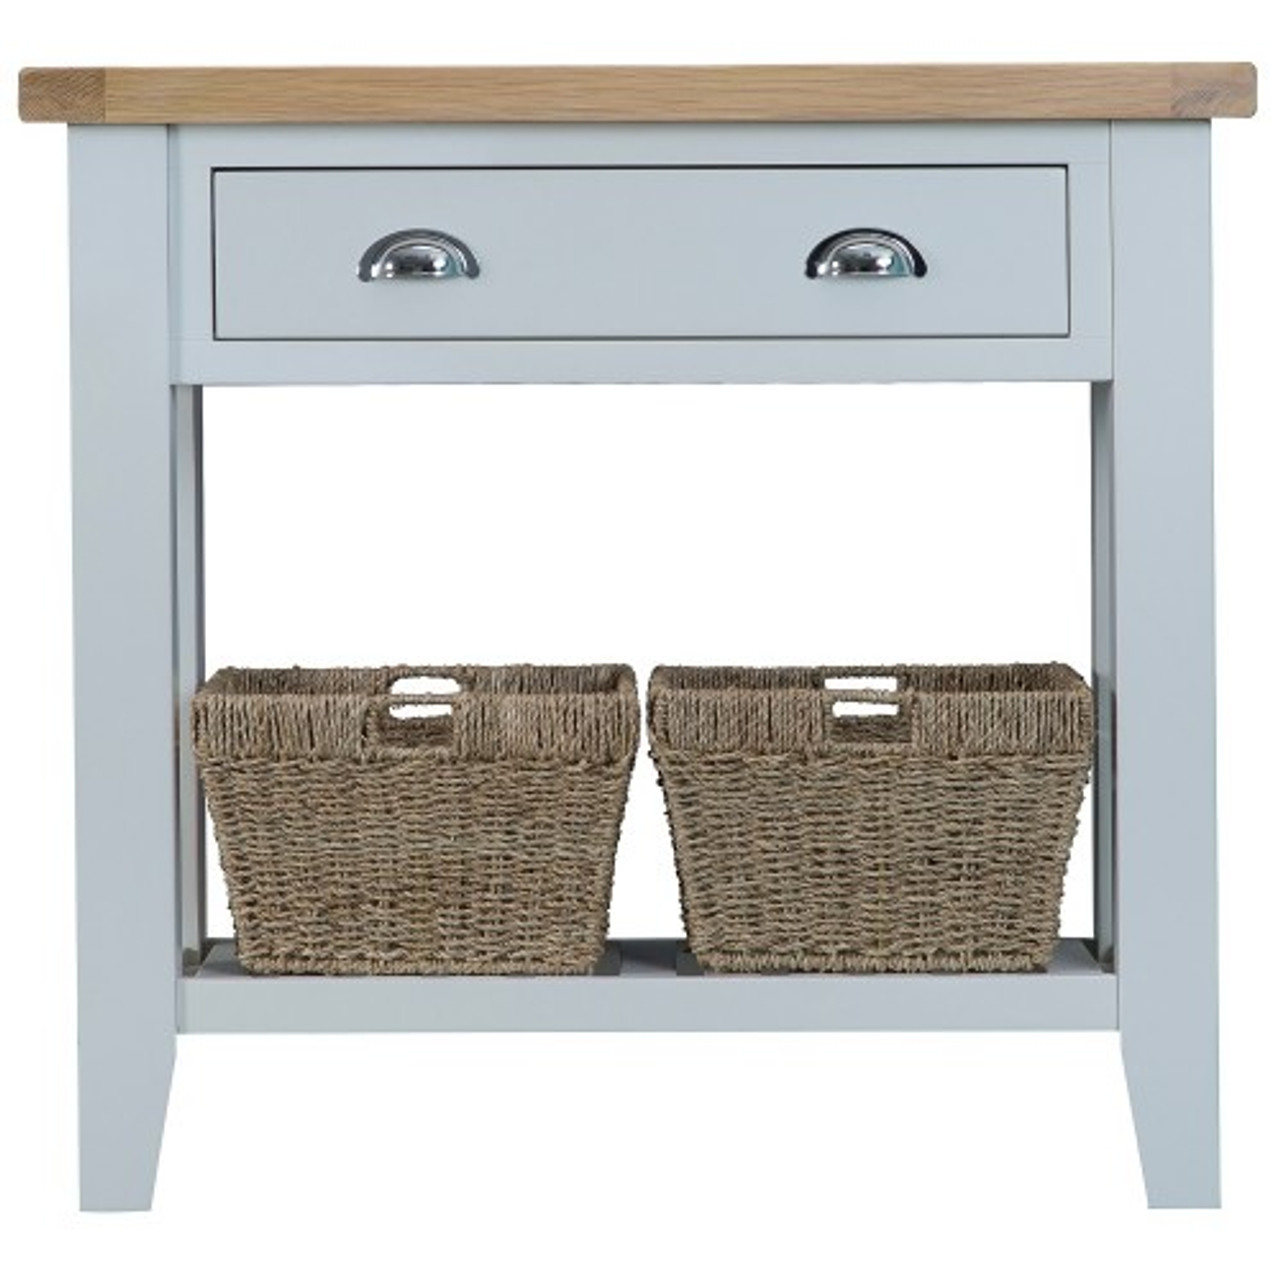 ARBETTA (TT CON) CONSOLE TABLE WITH ONE DRAWER U0026 2 BASKETS   800